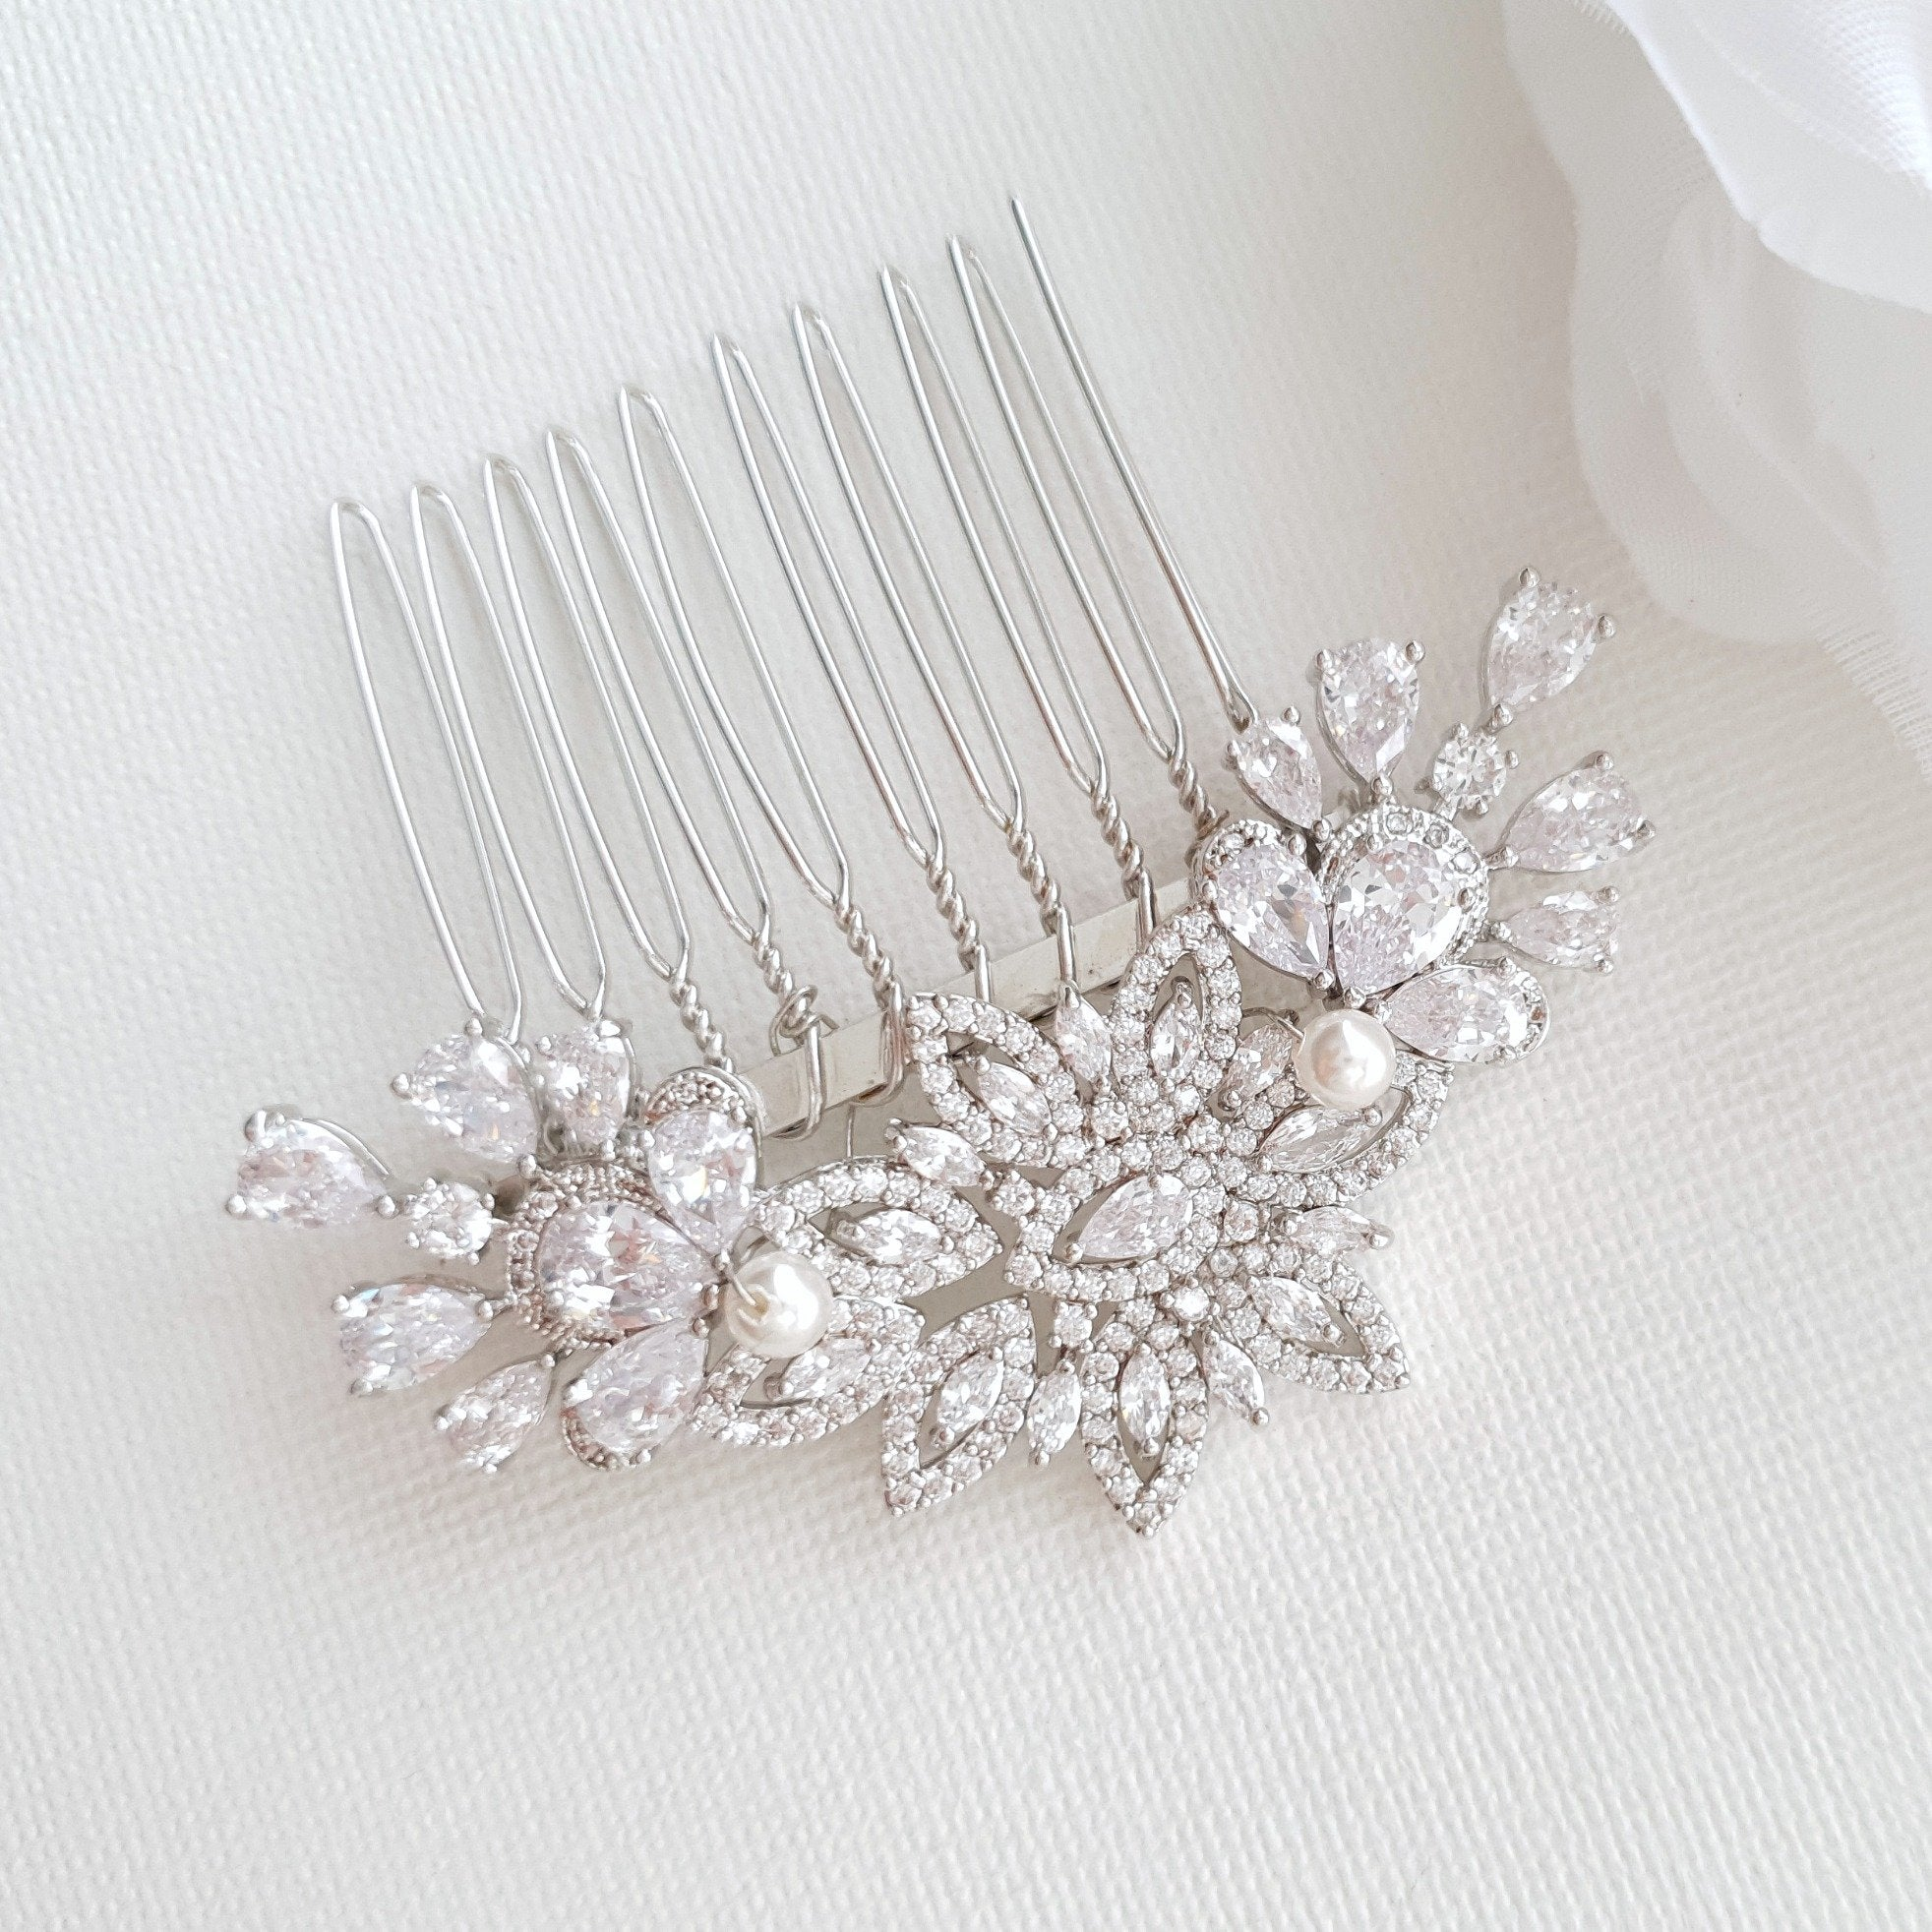 Crystal Flower Bridal Comb Headpiece-Lara - PoetryDesigns